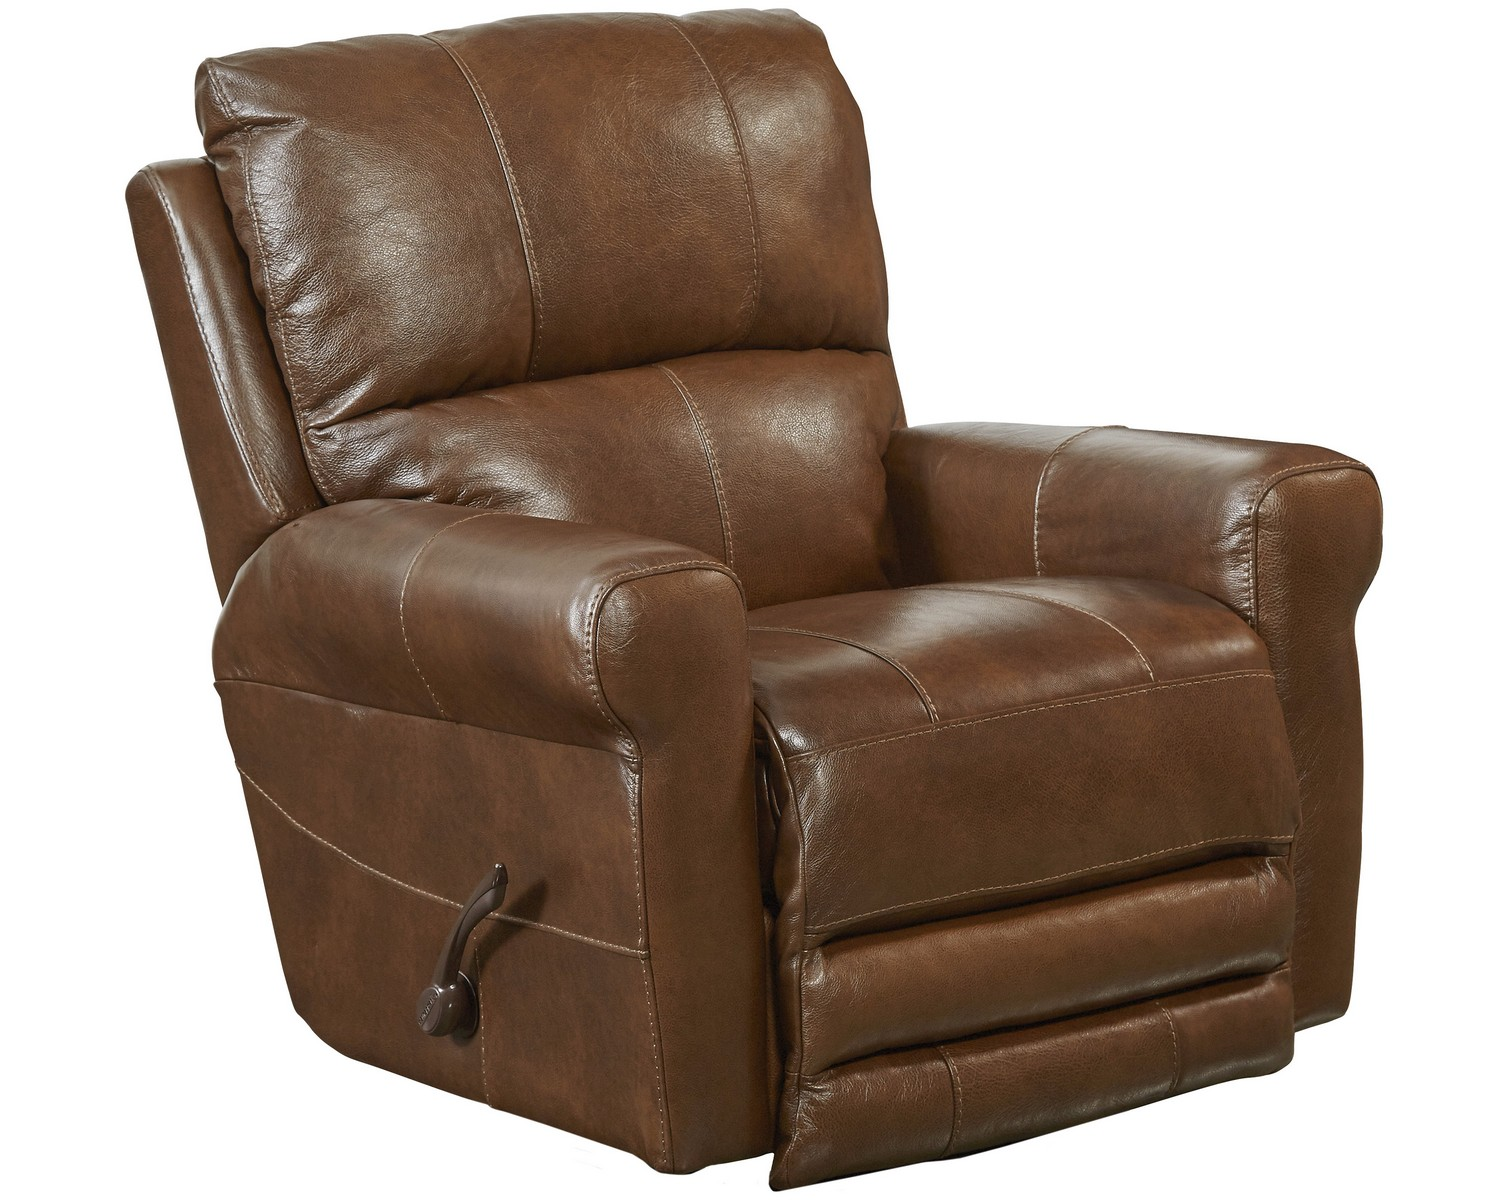 CatNapper Hoffner Top Grain Leather Touch Swivel Glider Recliner - Chestnut